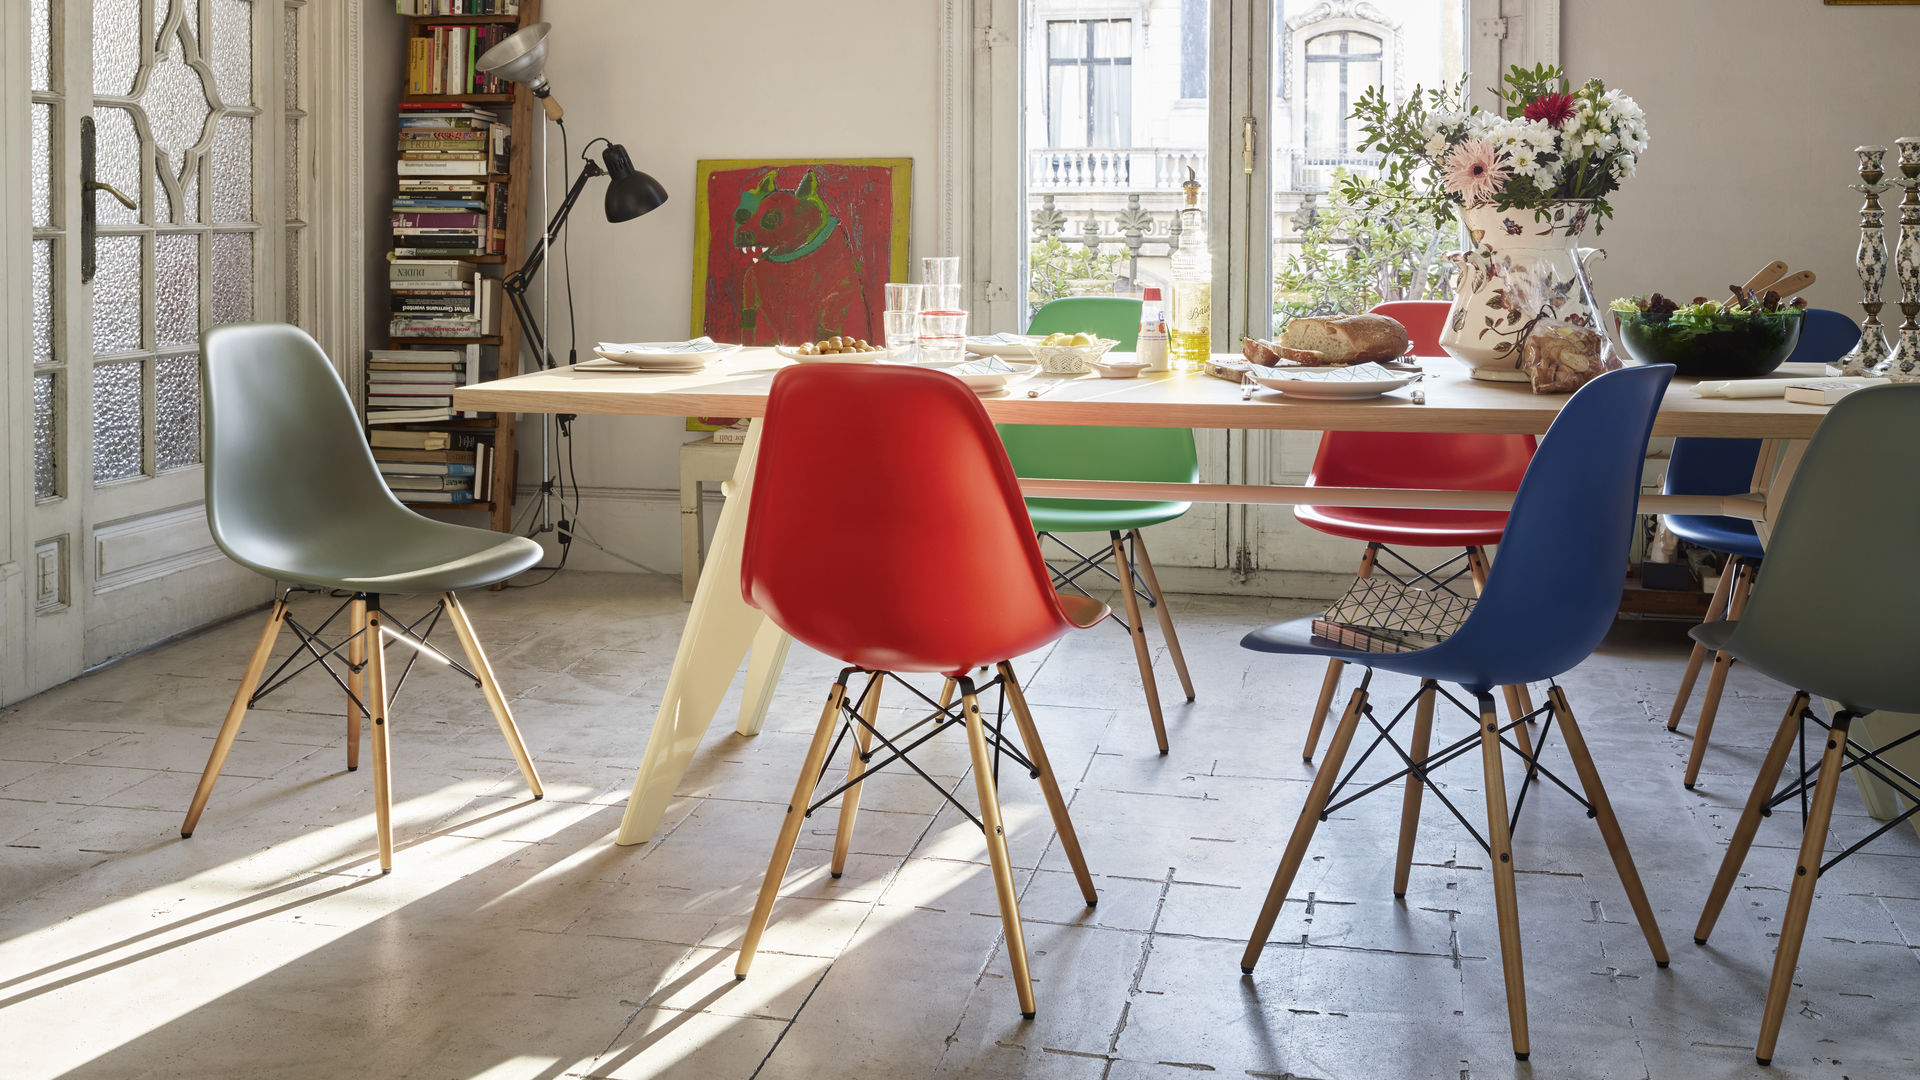 Eames plastic chair vitra - Eames Plastic Side Chair Dsw New Colours Em Table_papernapkins_web_inspiration Woodtable_dsw_daw_rotarytray_planophore_web_inspiration